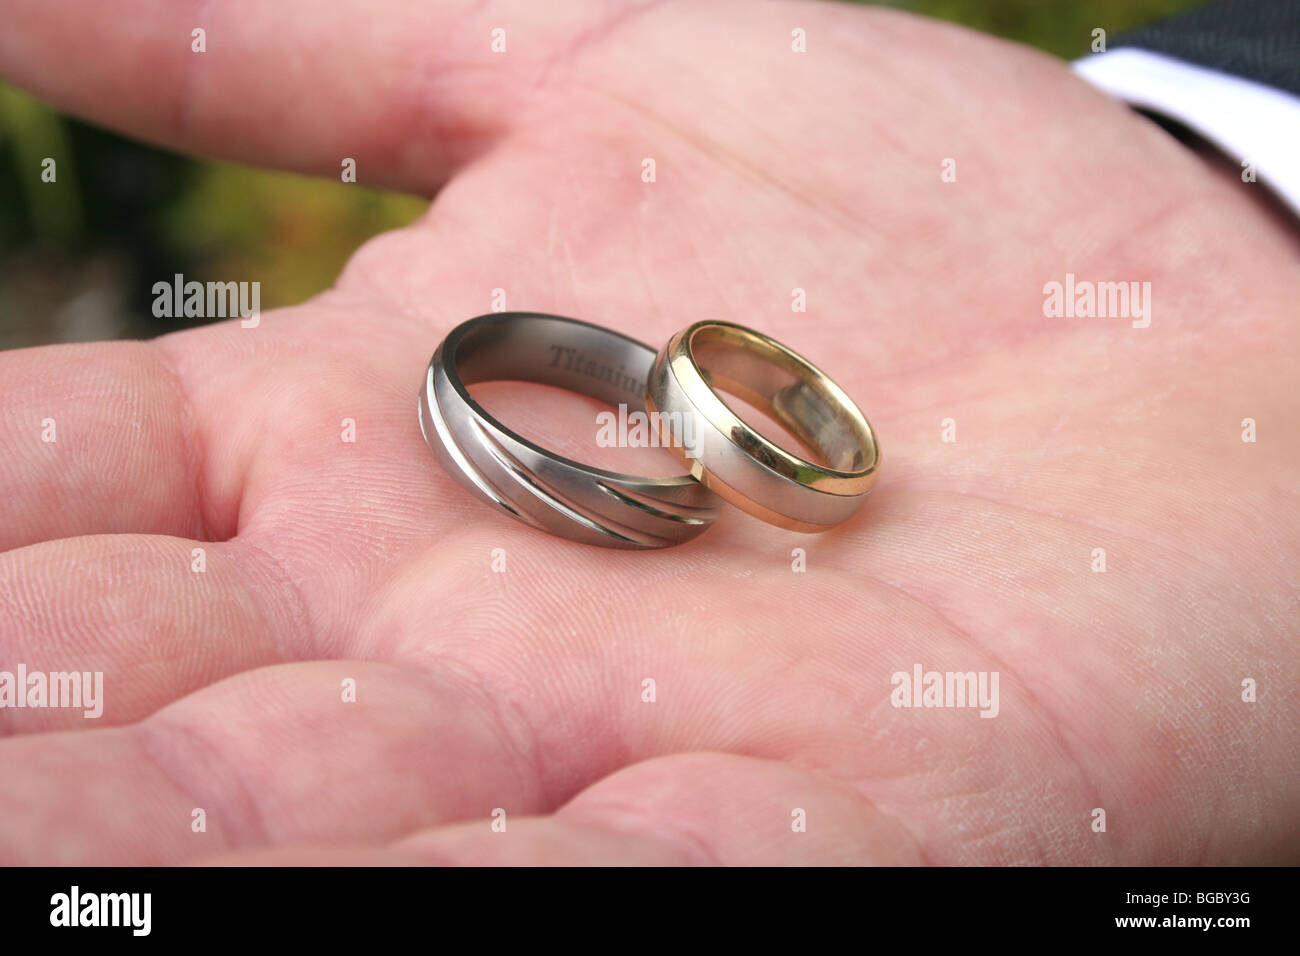 Silver Wedding Bands Stock Photos & Silver Wedding Bands Stock ...